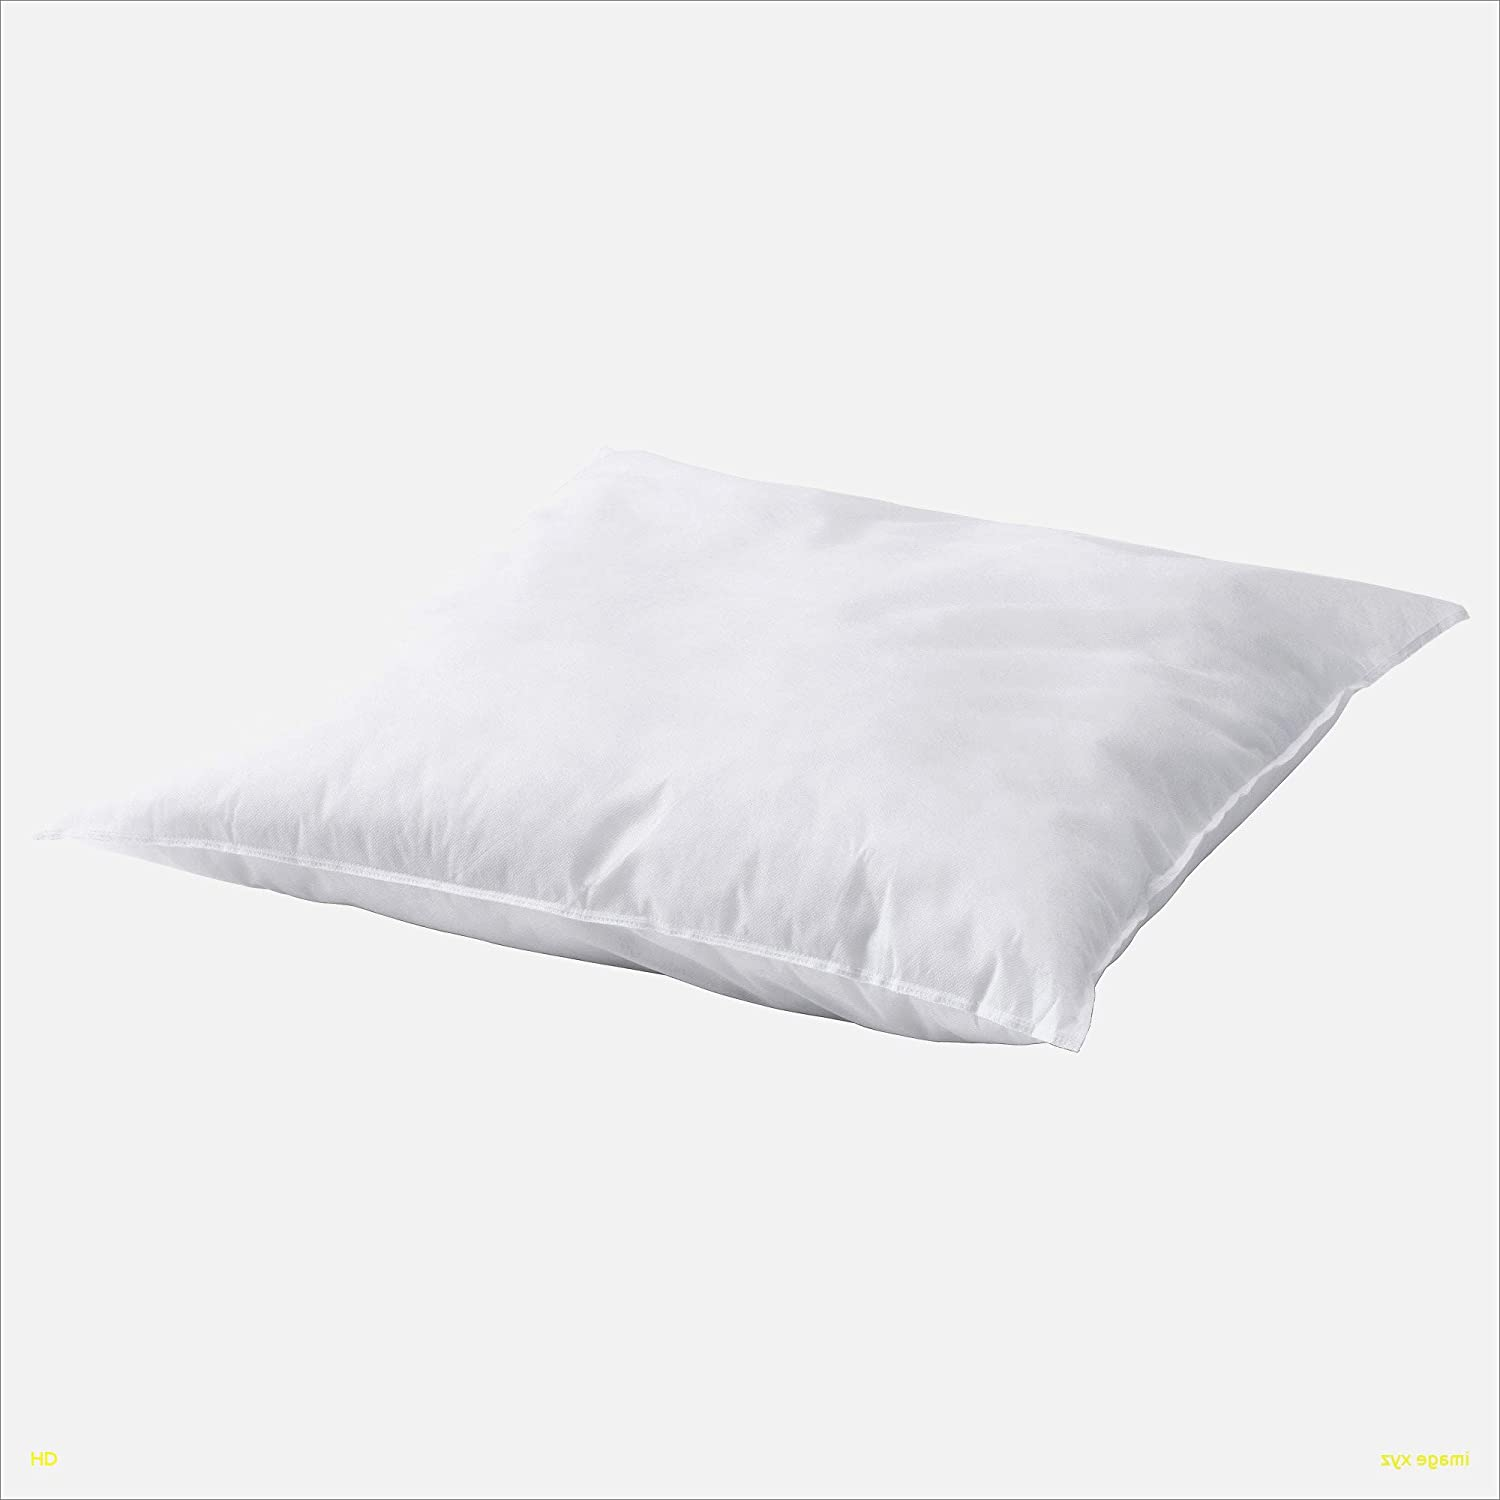 Amazon.co.uk: disposable pillow cases